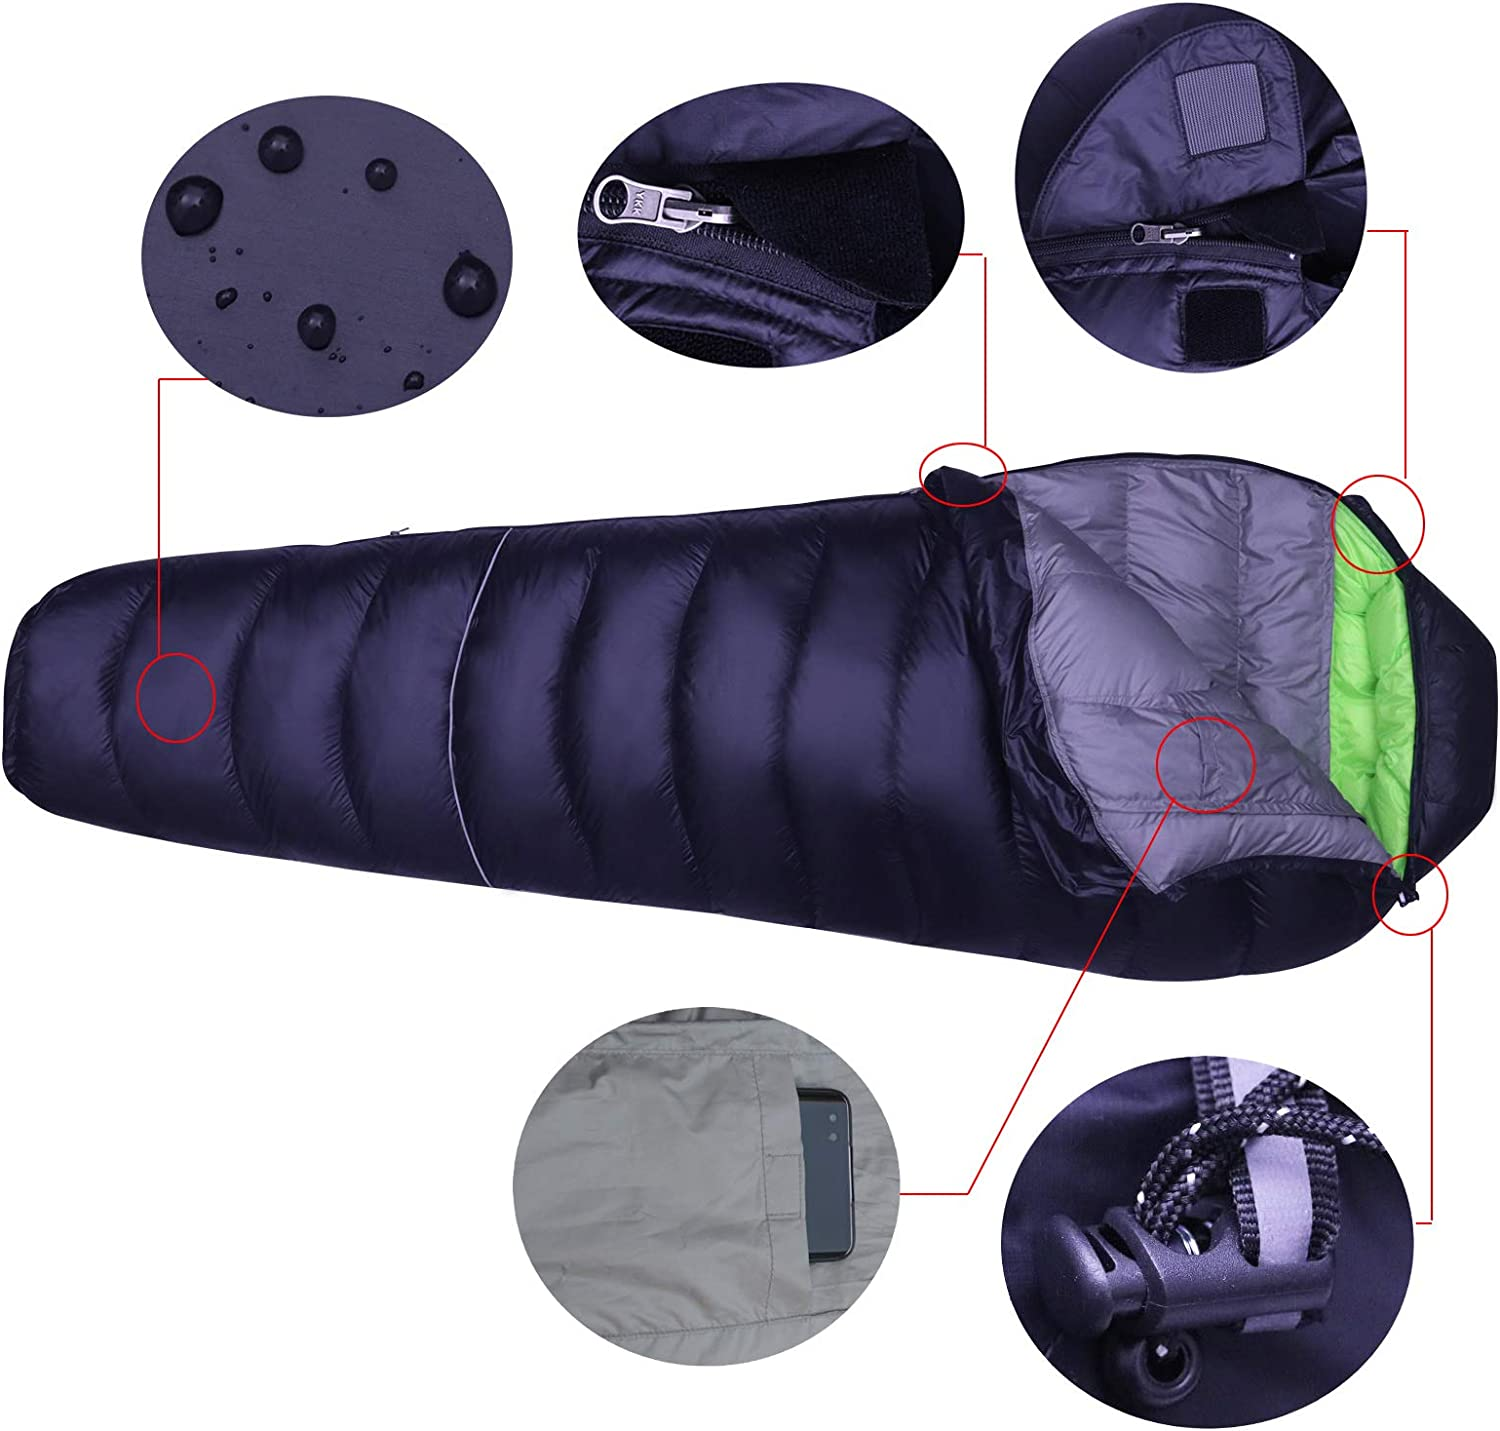 LMR Outdoors Ultralight Mummy Down Sleeping Bag for camping with Compression Sack